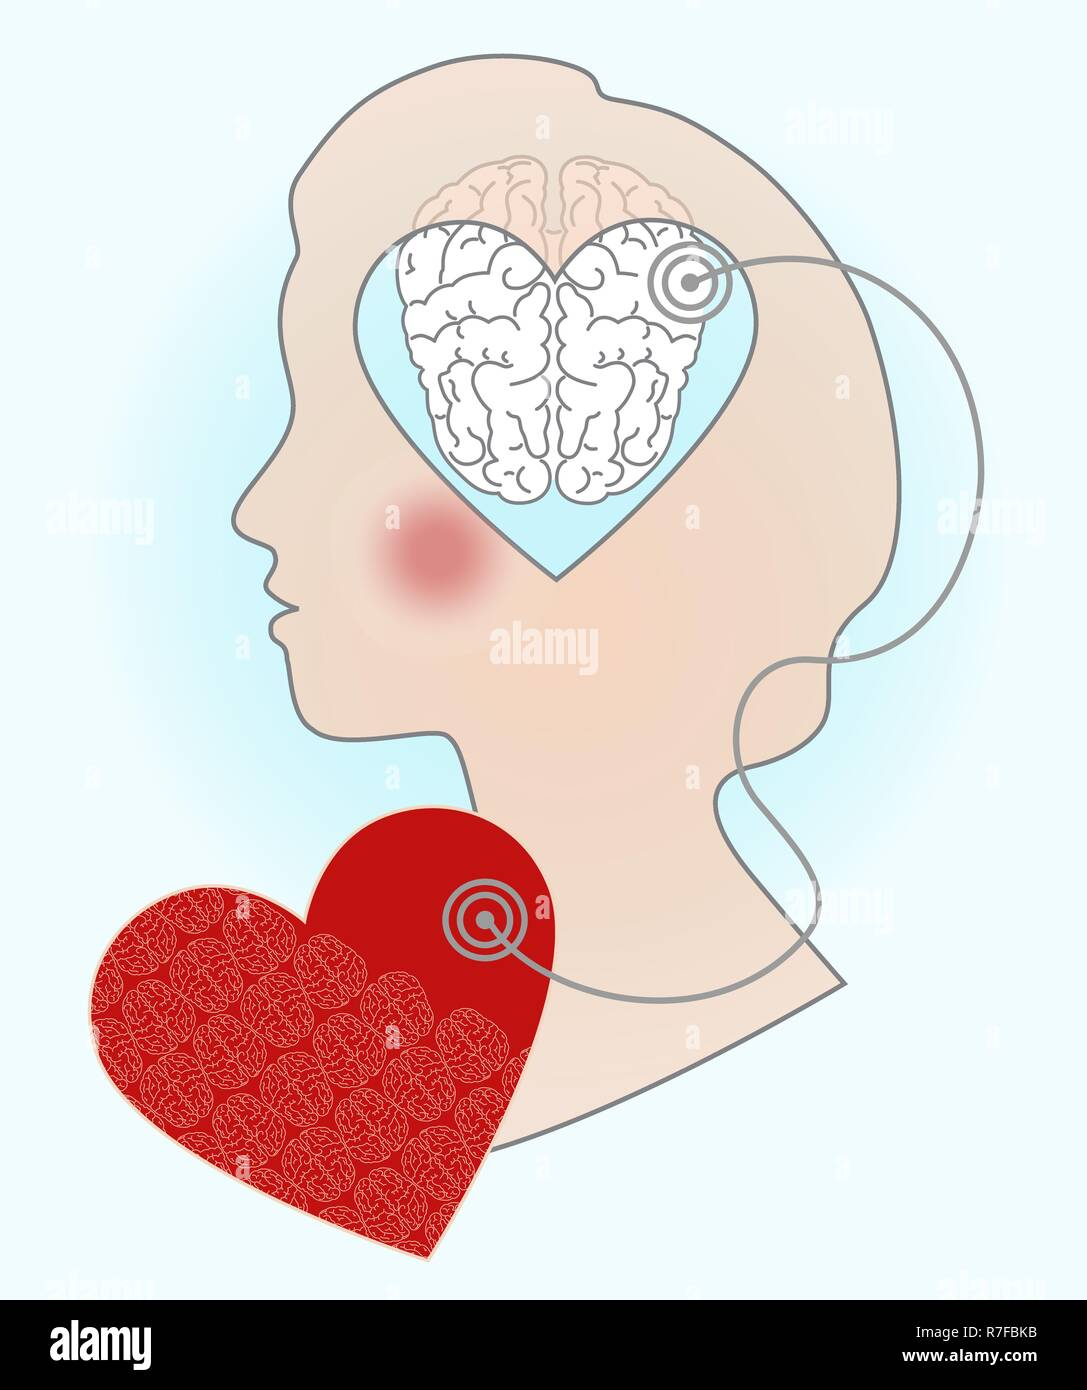 Silhouette of a girl's head, an illustration of the relationship of the brain and heart. Signals from the soul to the mind. - Stock Vector